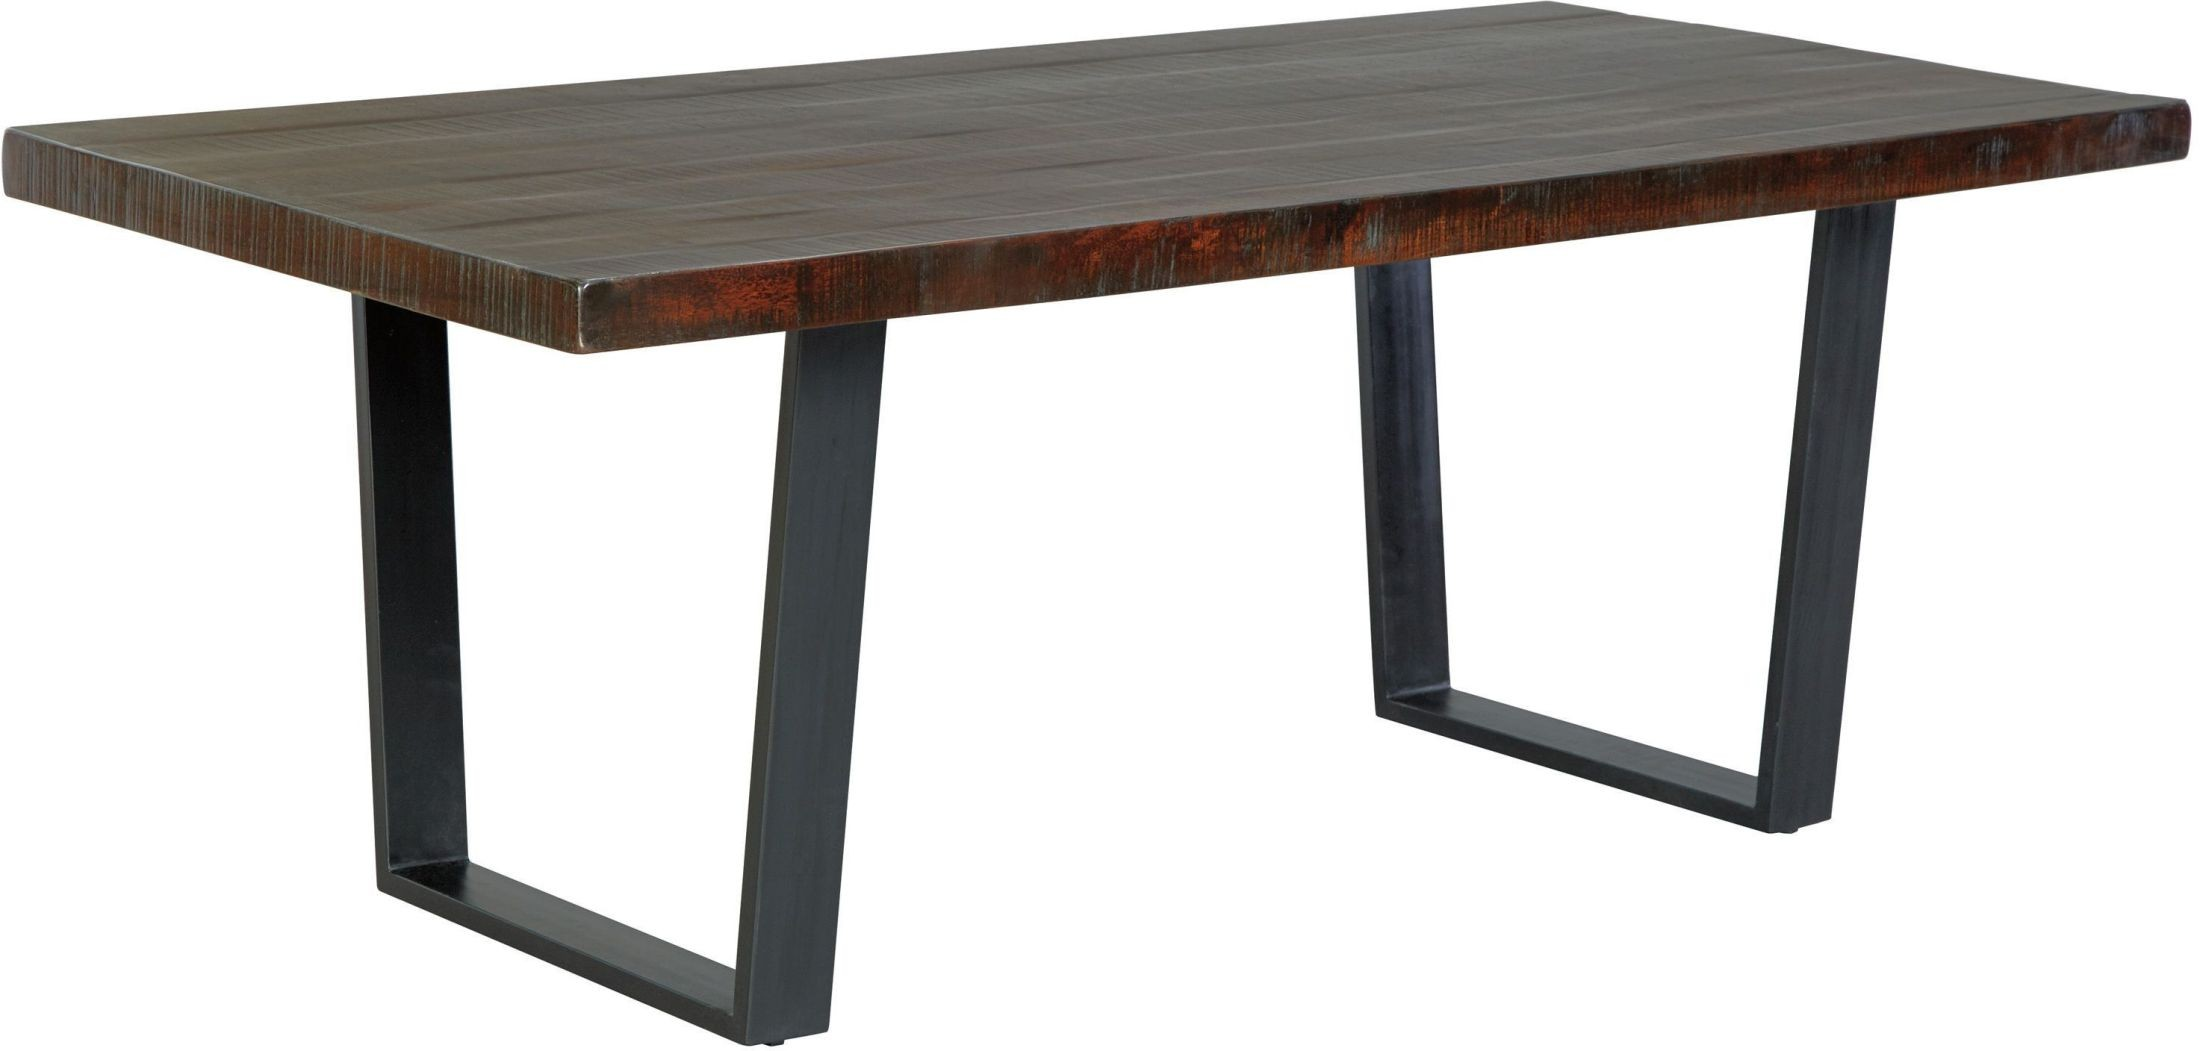 Parlone Dark Brown Rectangular Dining Room Table from  : d721 25 sw from colemanfurniture.com size 2200 x 1051 jpeg 148kB